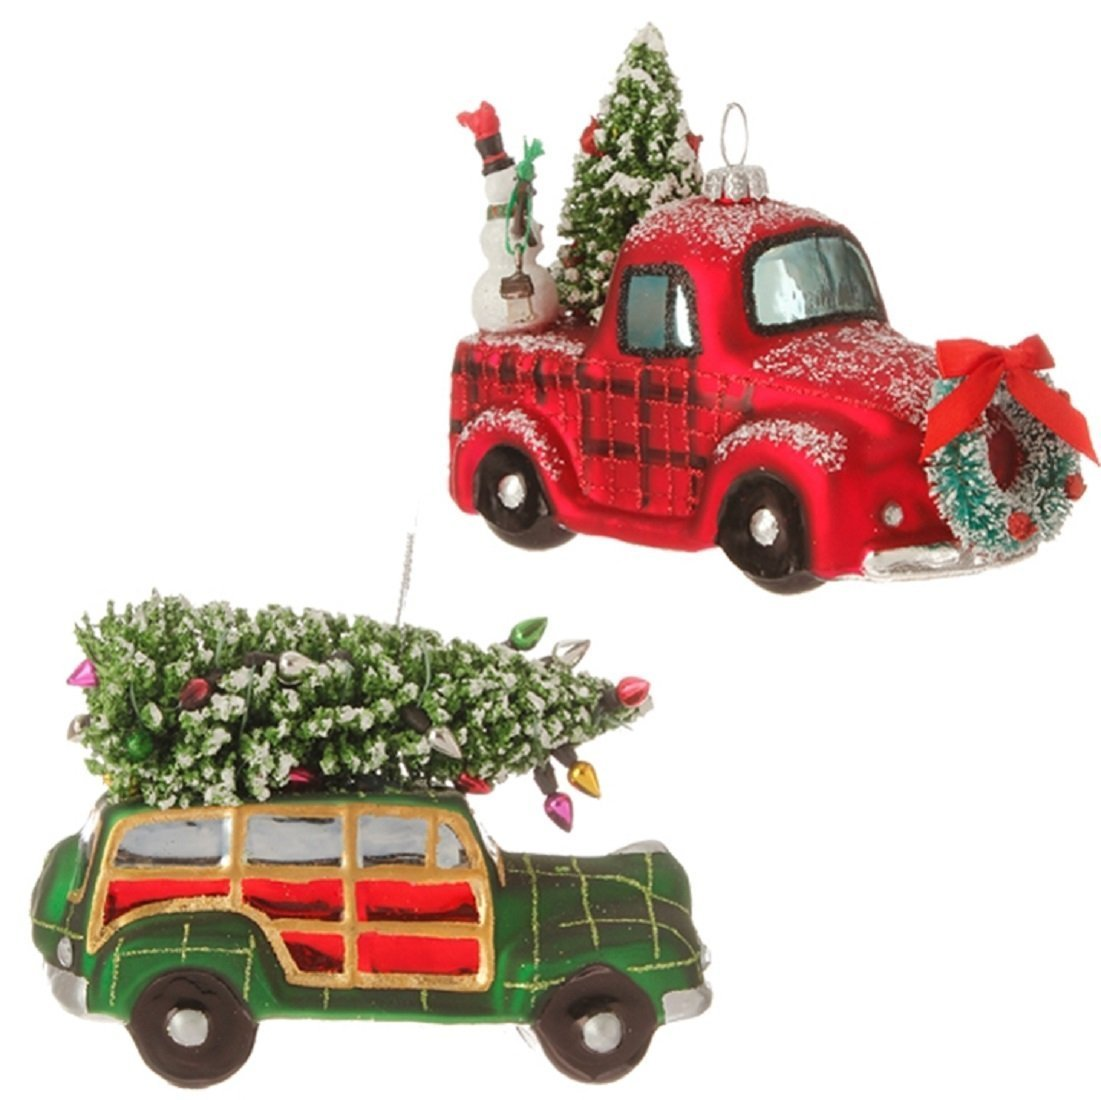 amazoncom raz imports christmas car and truck glass ornaments set of 2 kitchen dining - Christmas Decorations For Your Car